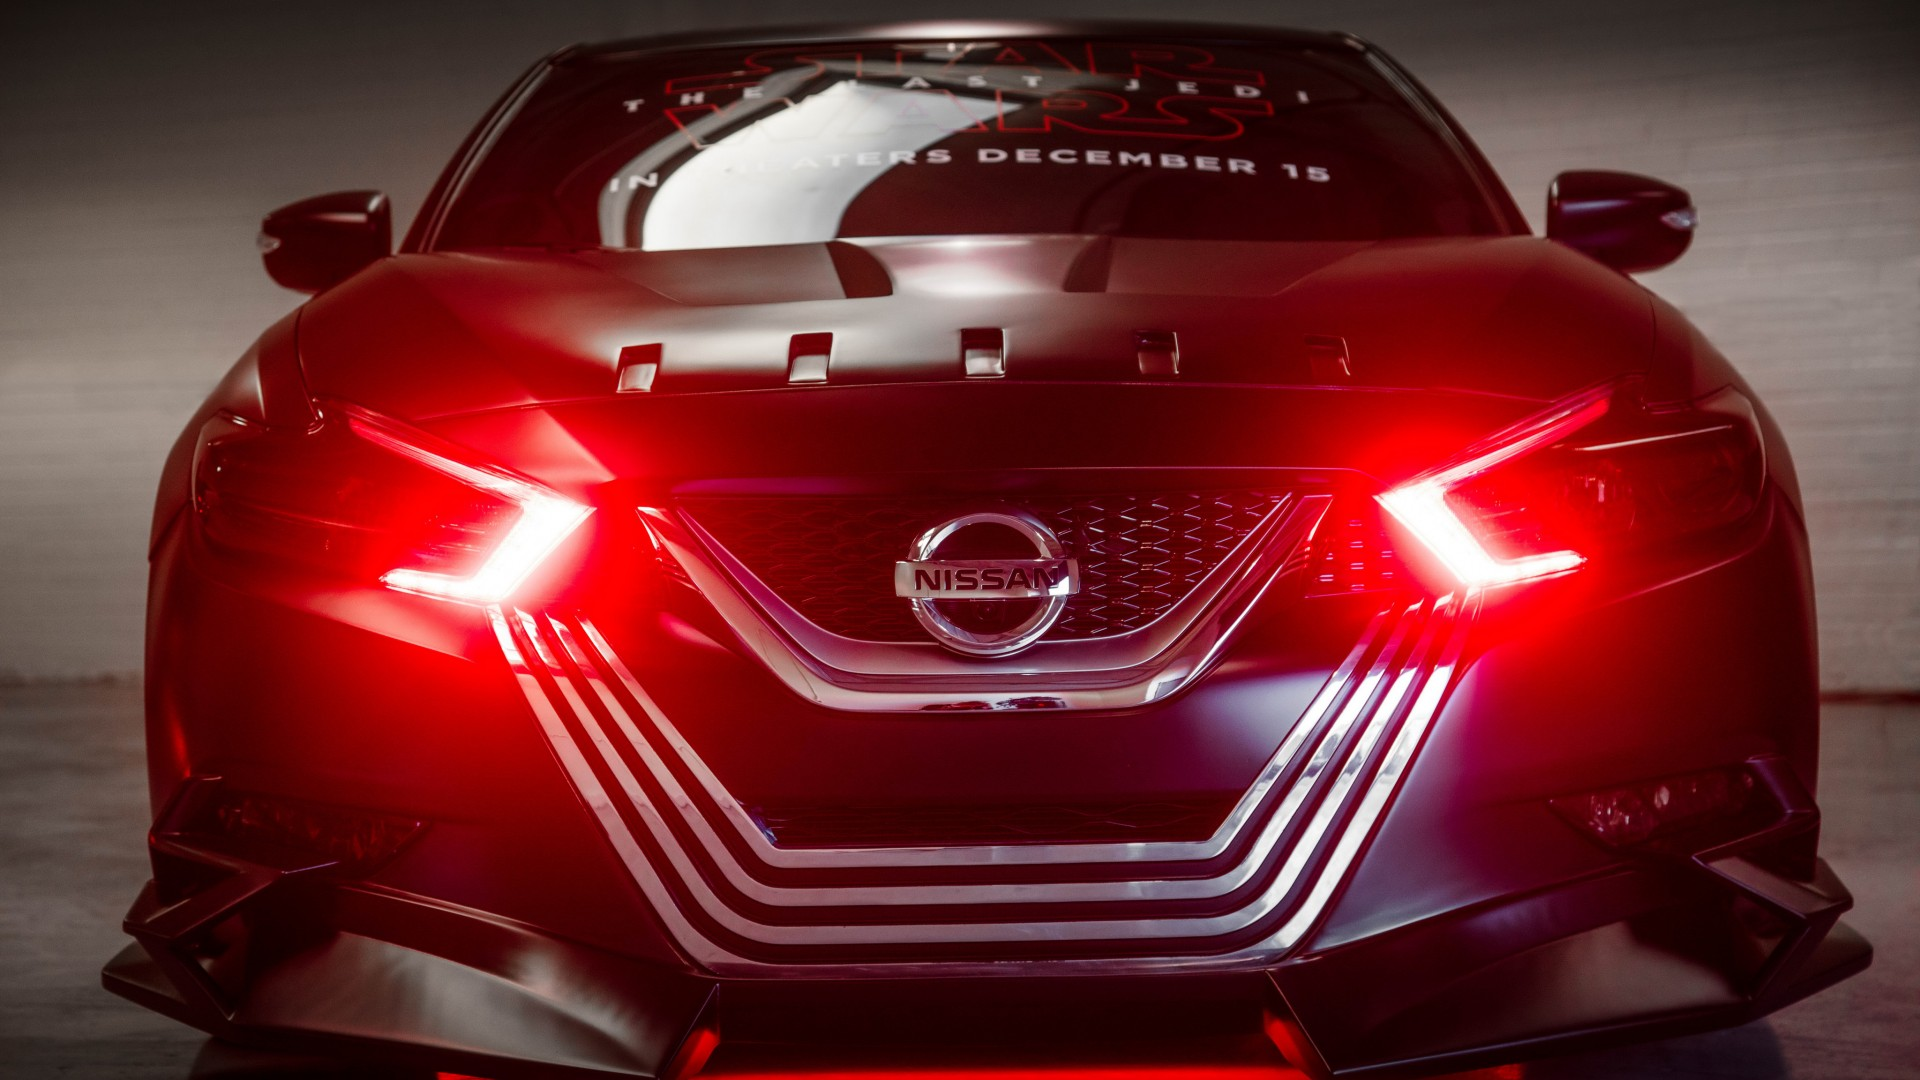 Nissan Maxima Kylo Ren 4K Wallpaper | HD Car Wallpapers ...